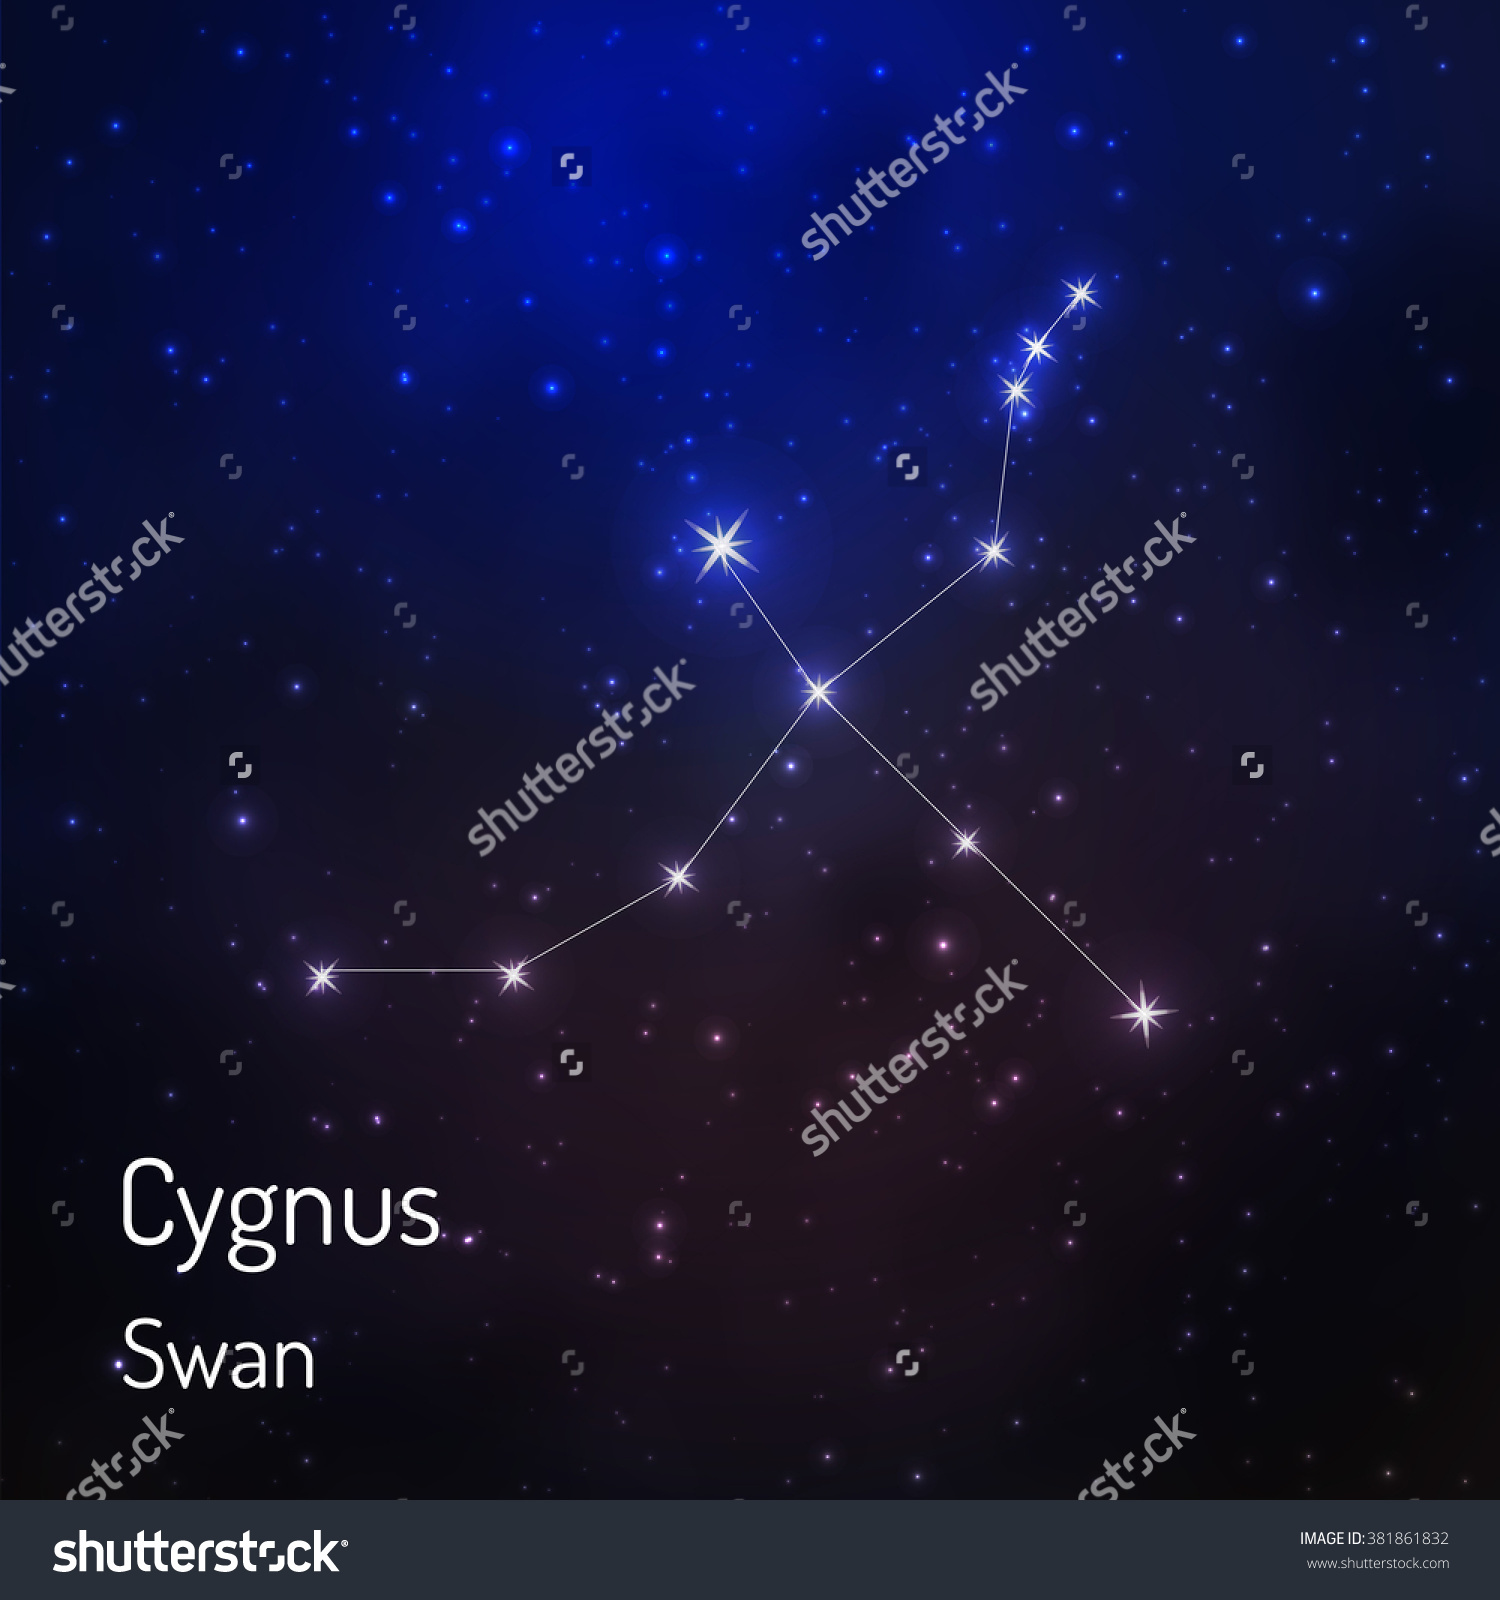 Cygnus Swan Constellation Night Starry Sky Stock Vector 381861832.